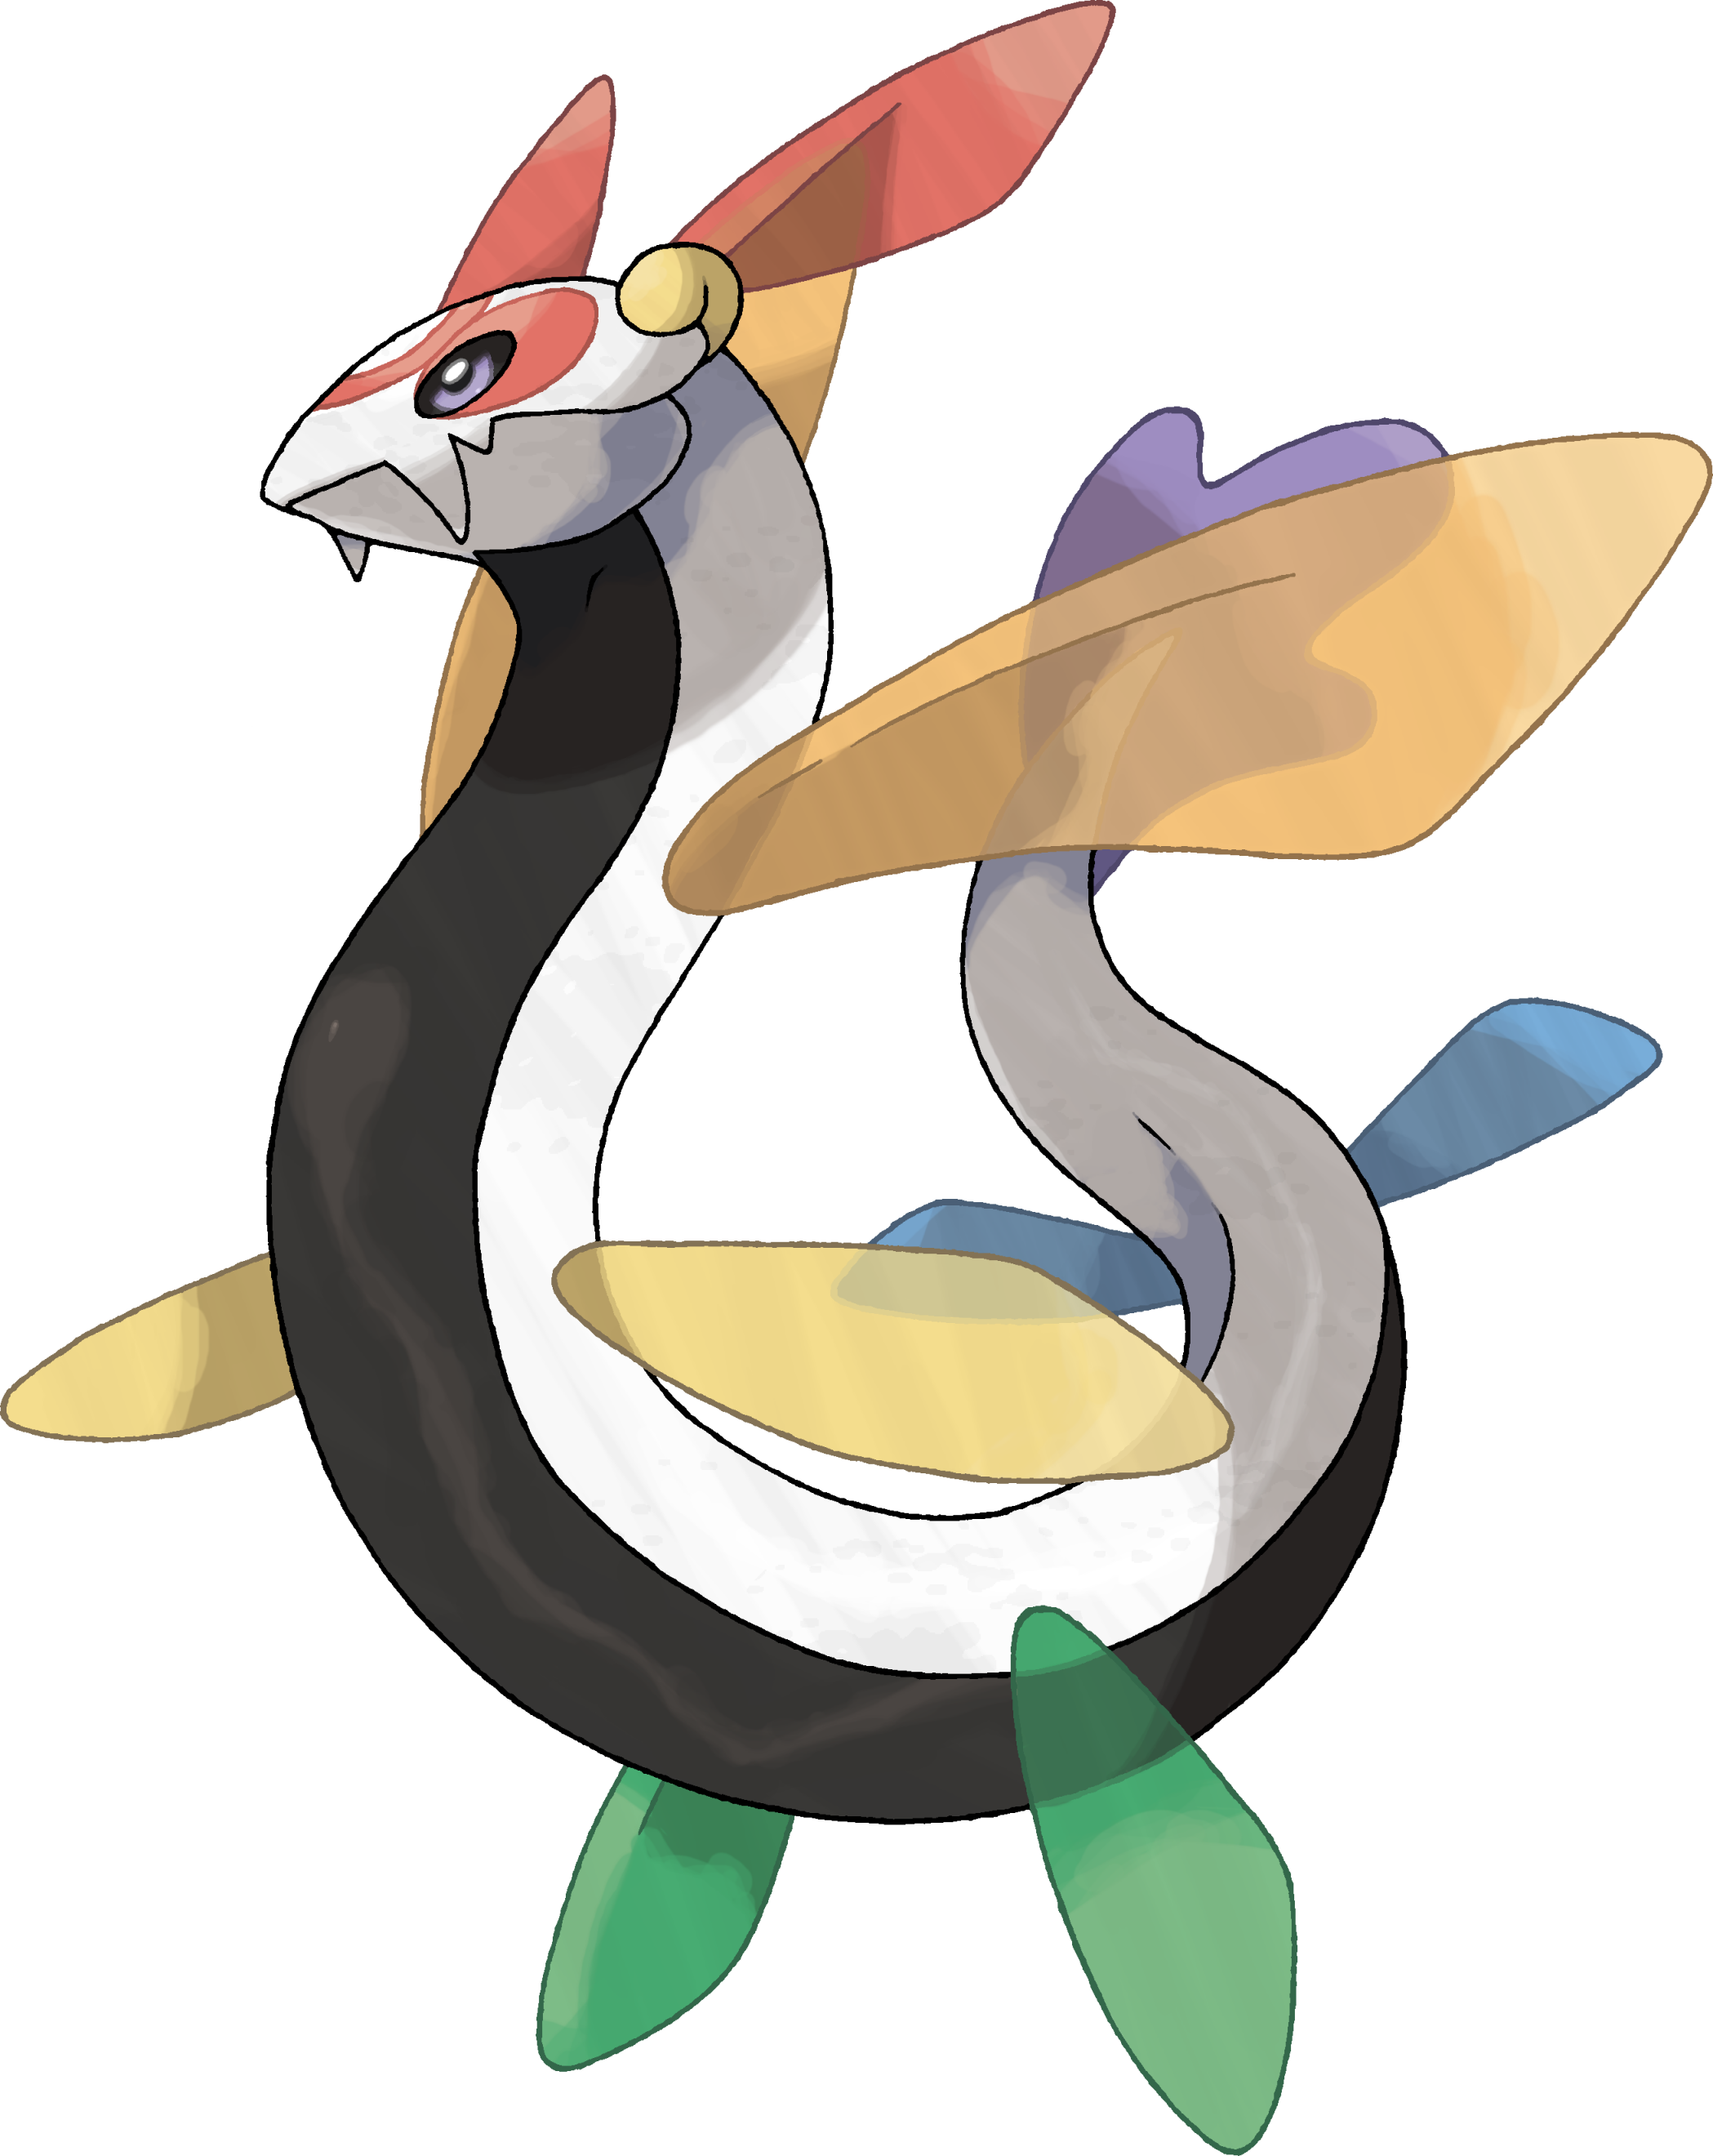 Aerositch Rainbow Dragon Pokemon Dragon Magic Pokemon